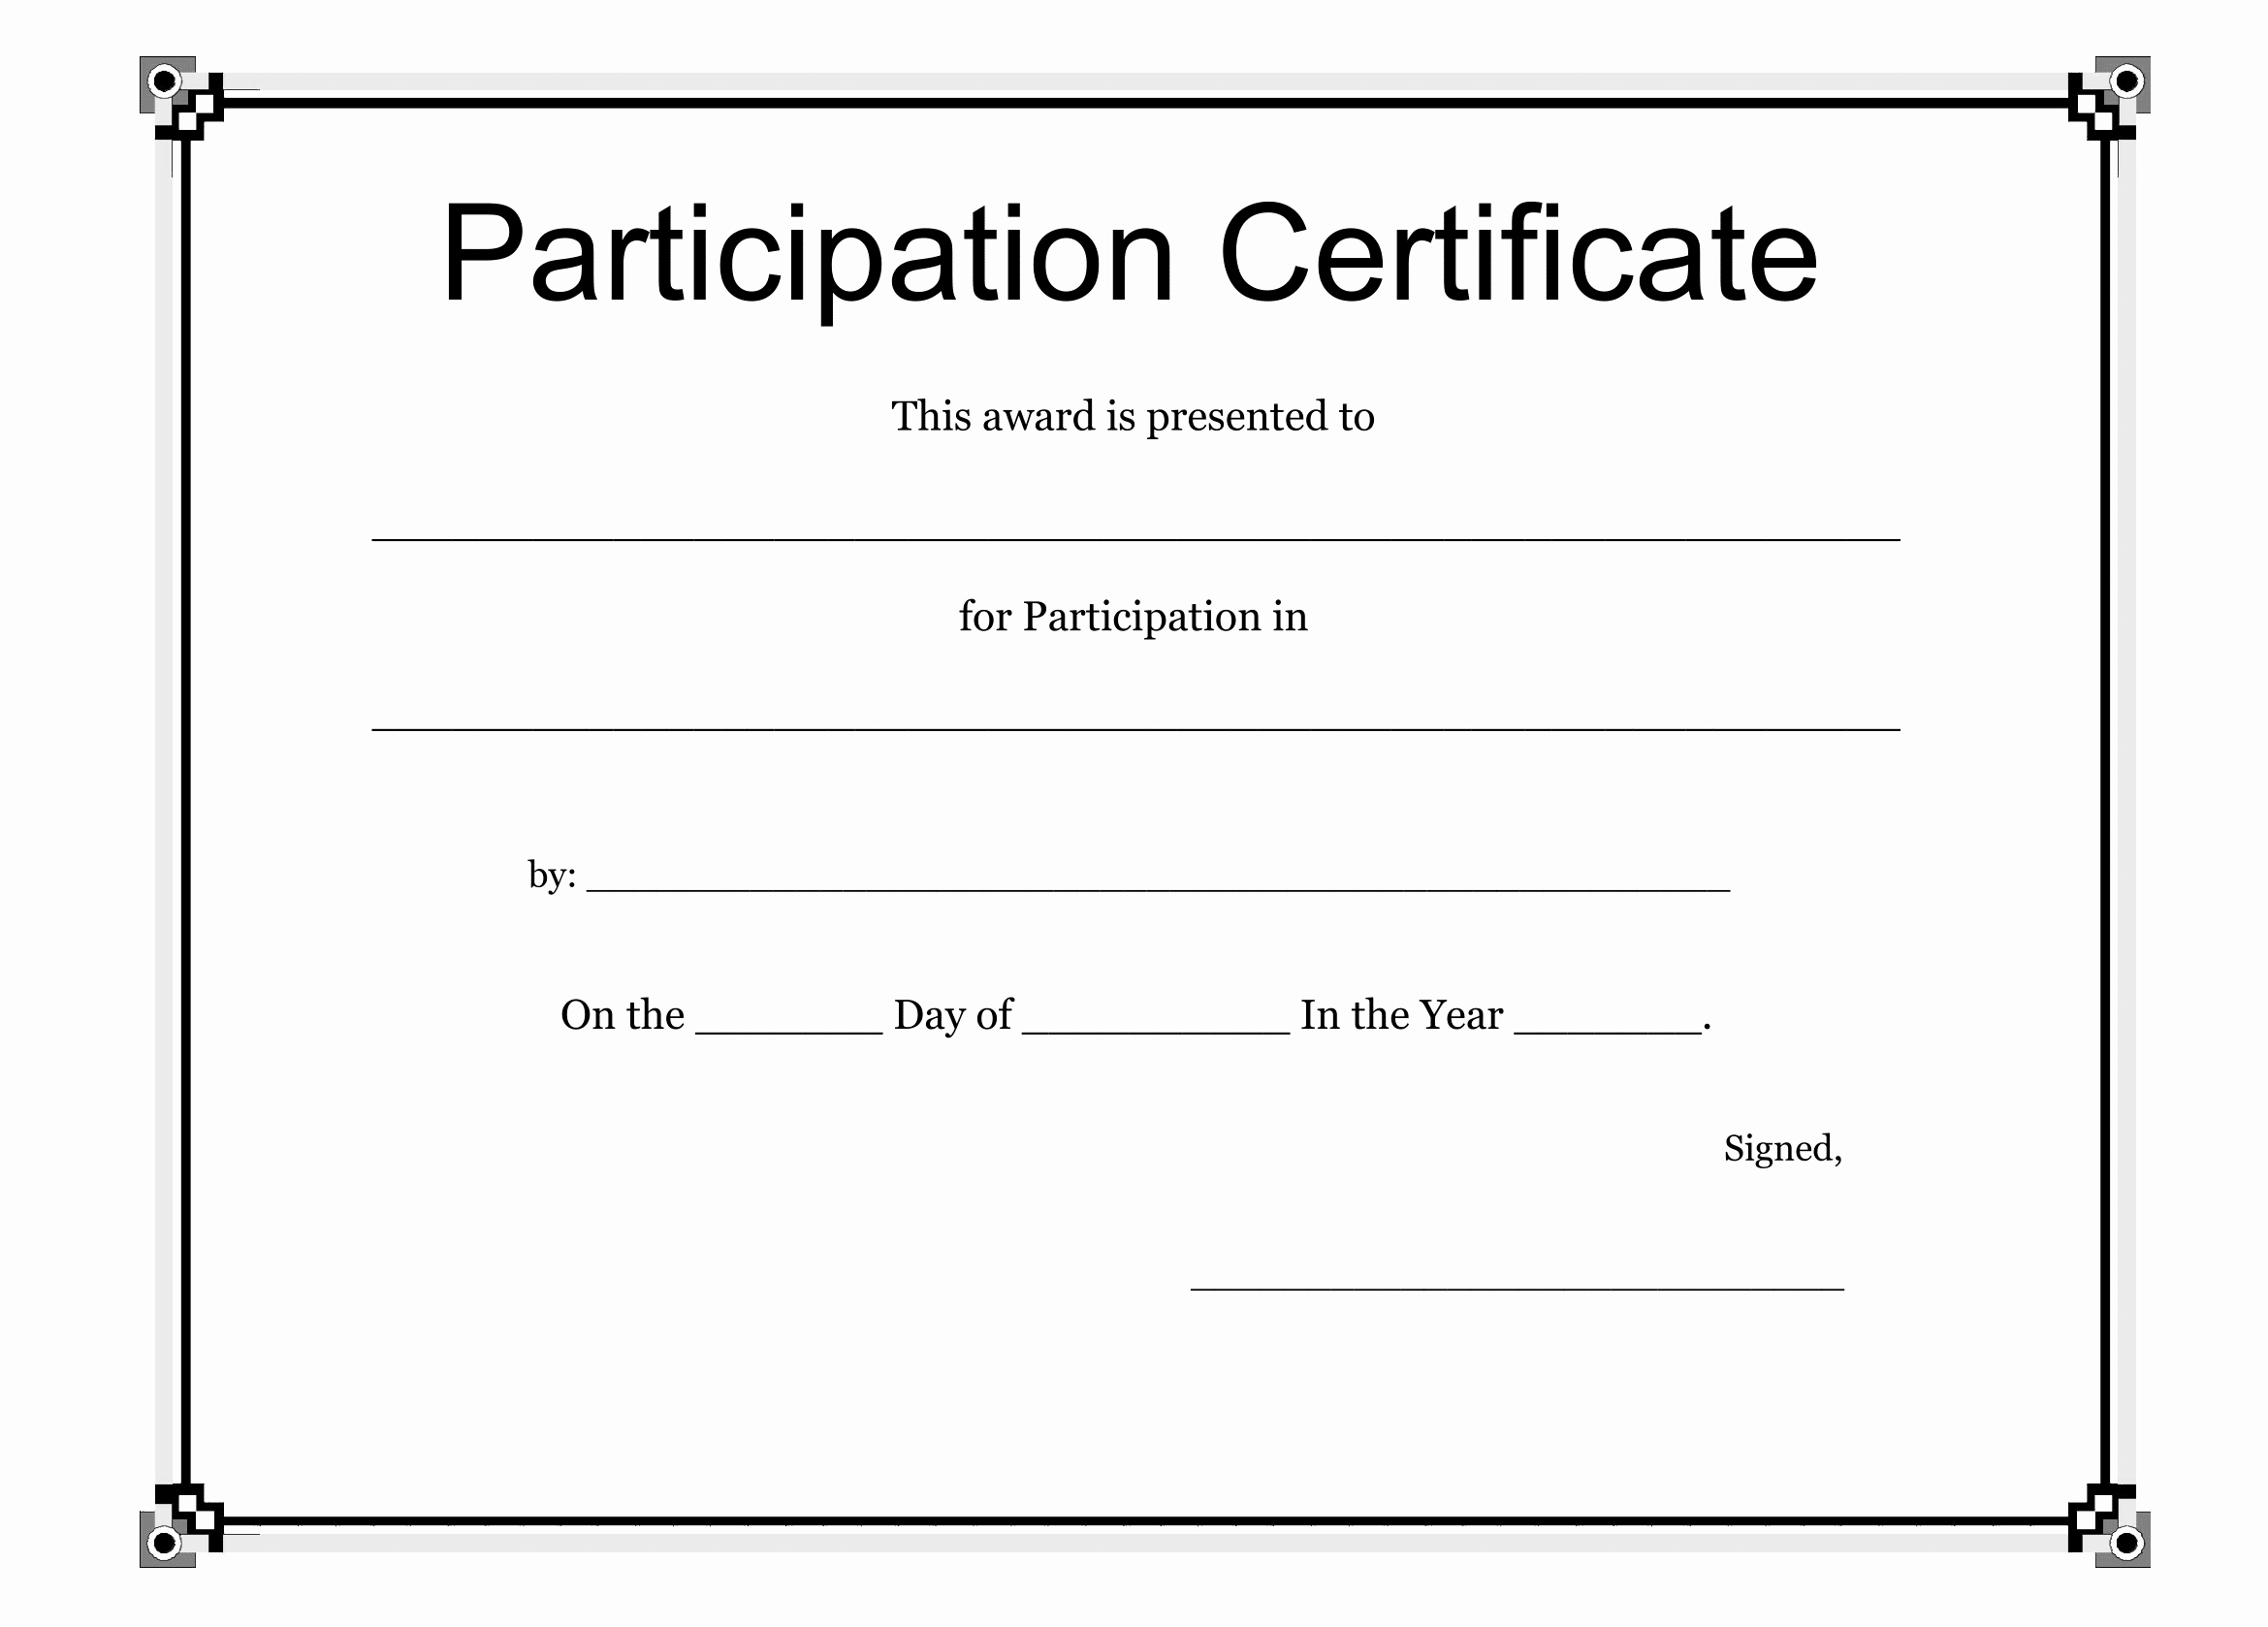 Certificate Design Templates Free Download Unique Participation Certificate Template Free Download